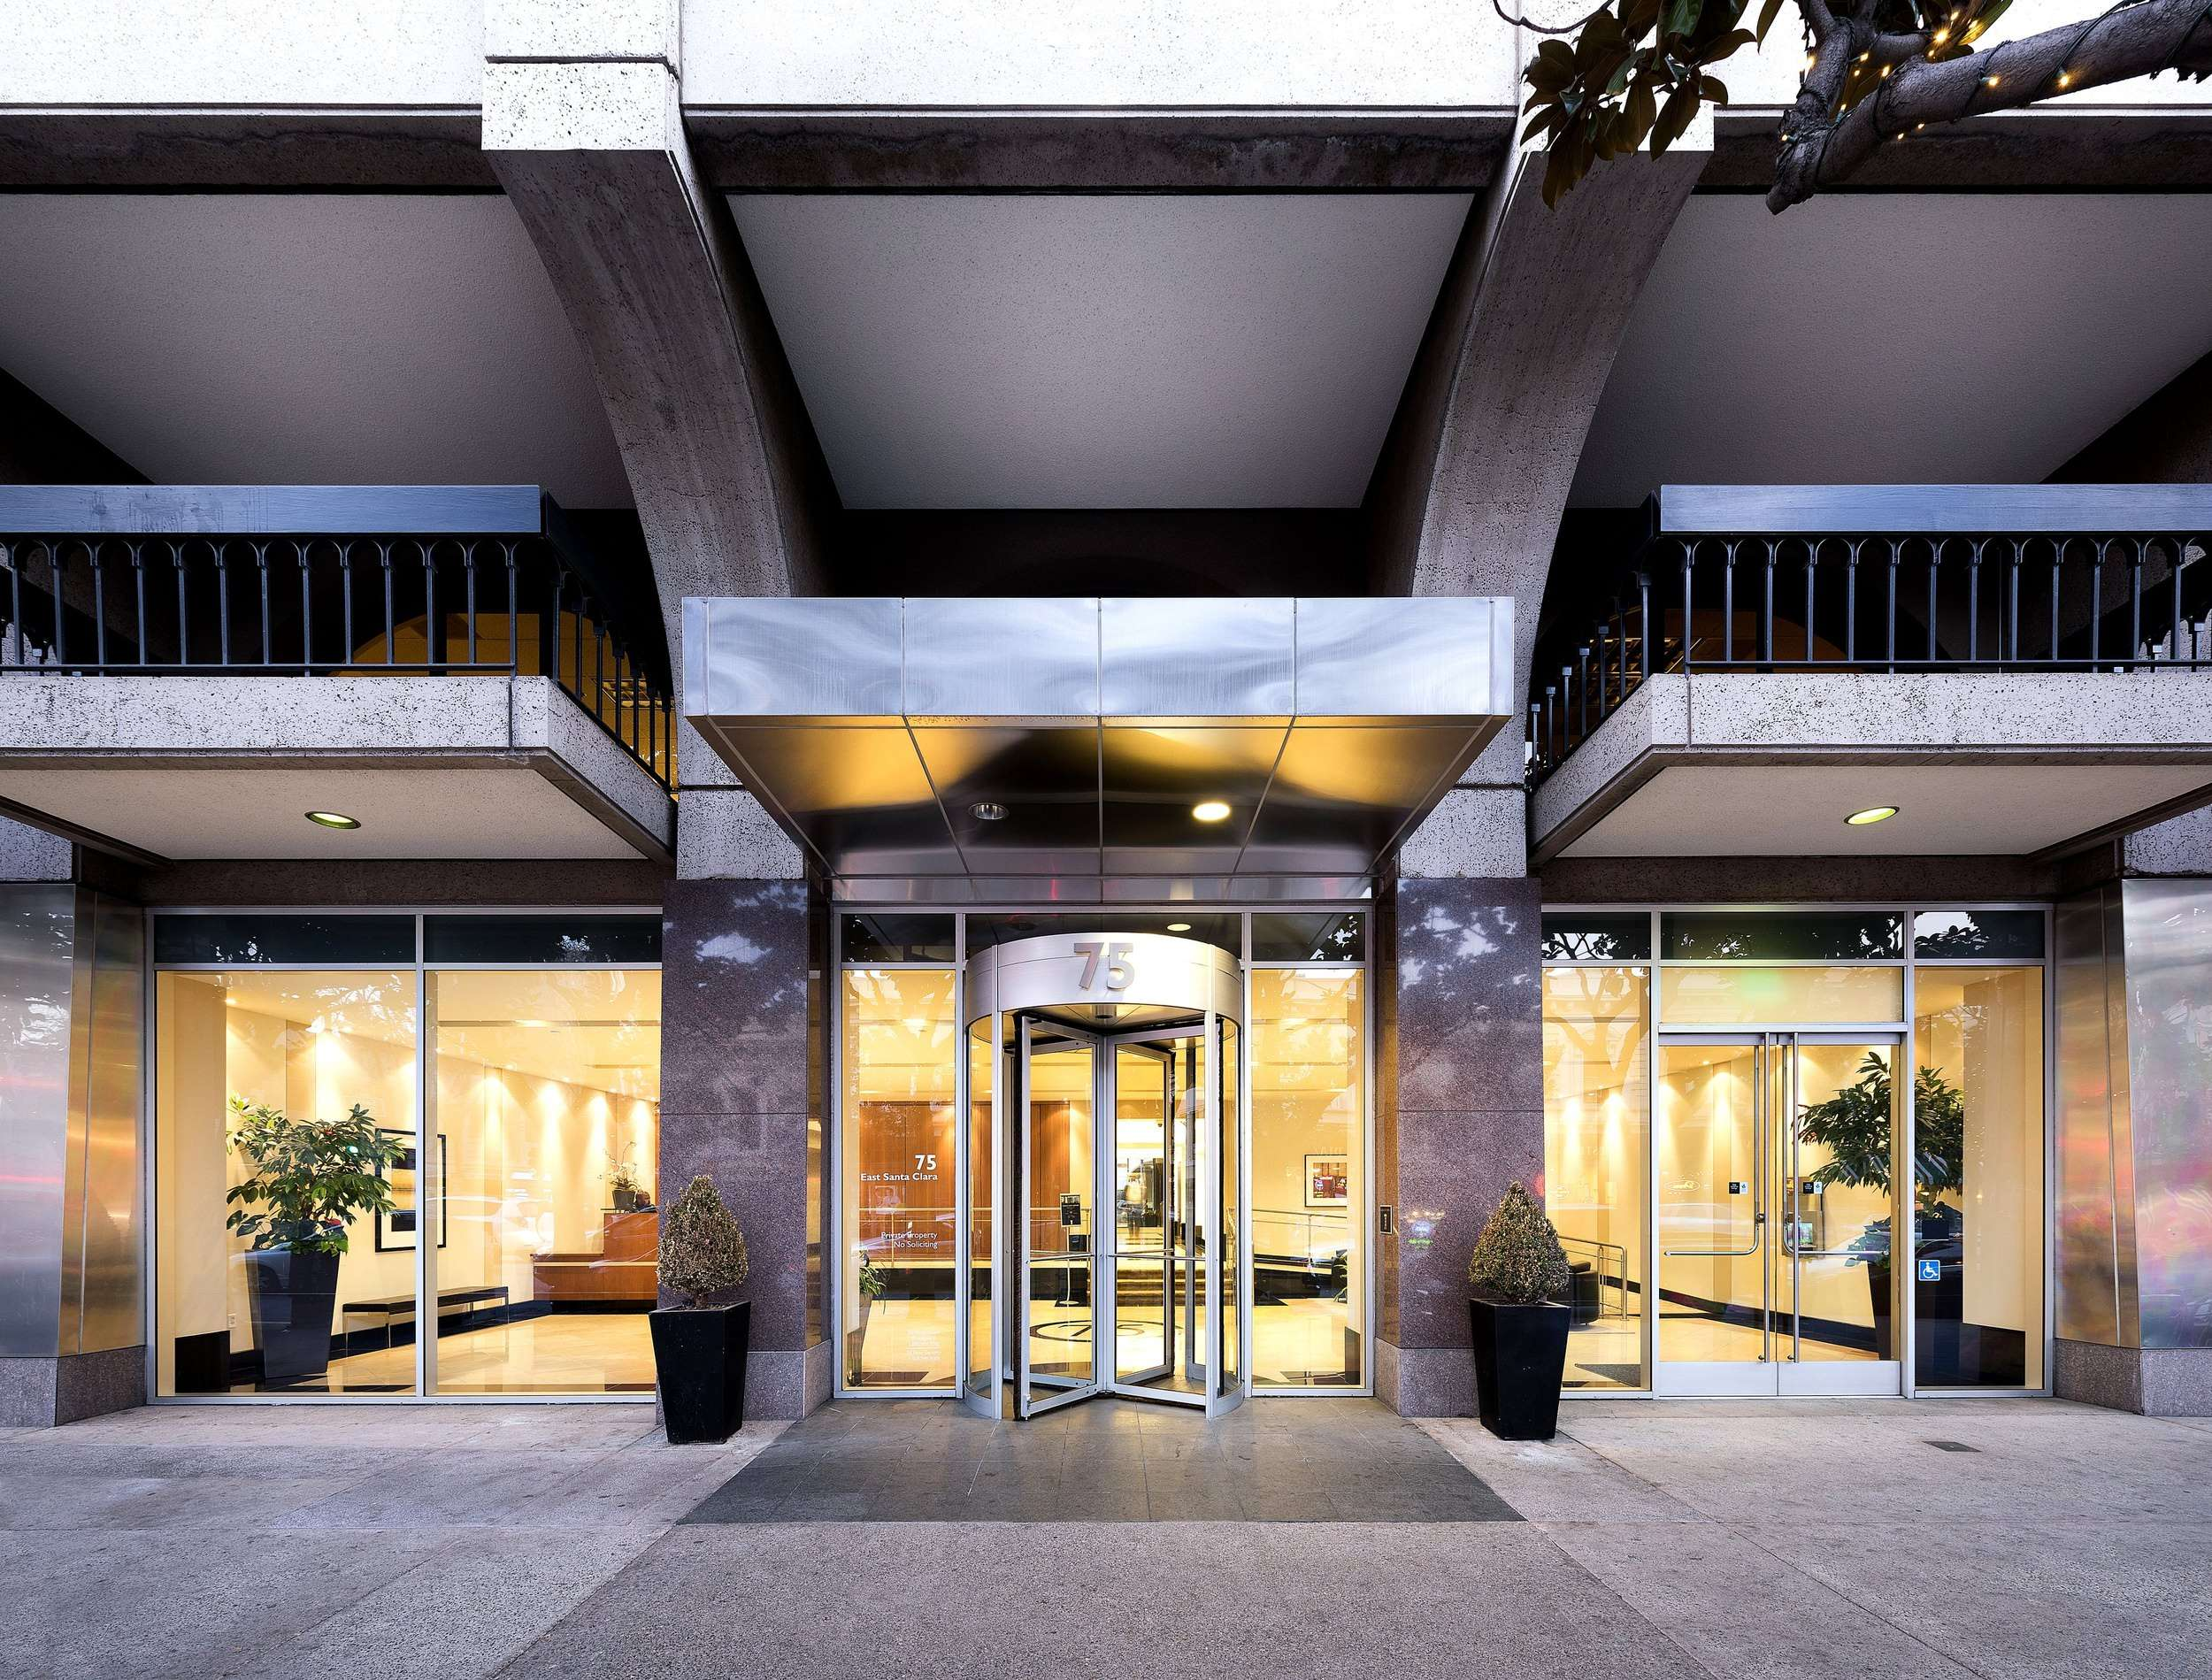 A large building that has a rotating door that goes into it as well as glass doors on either side of